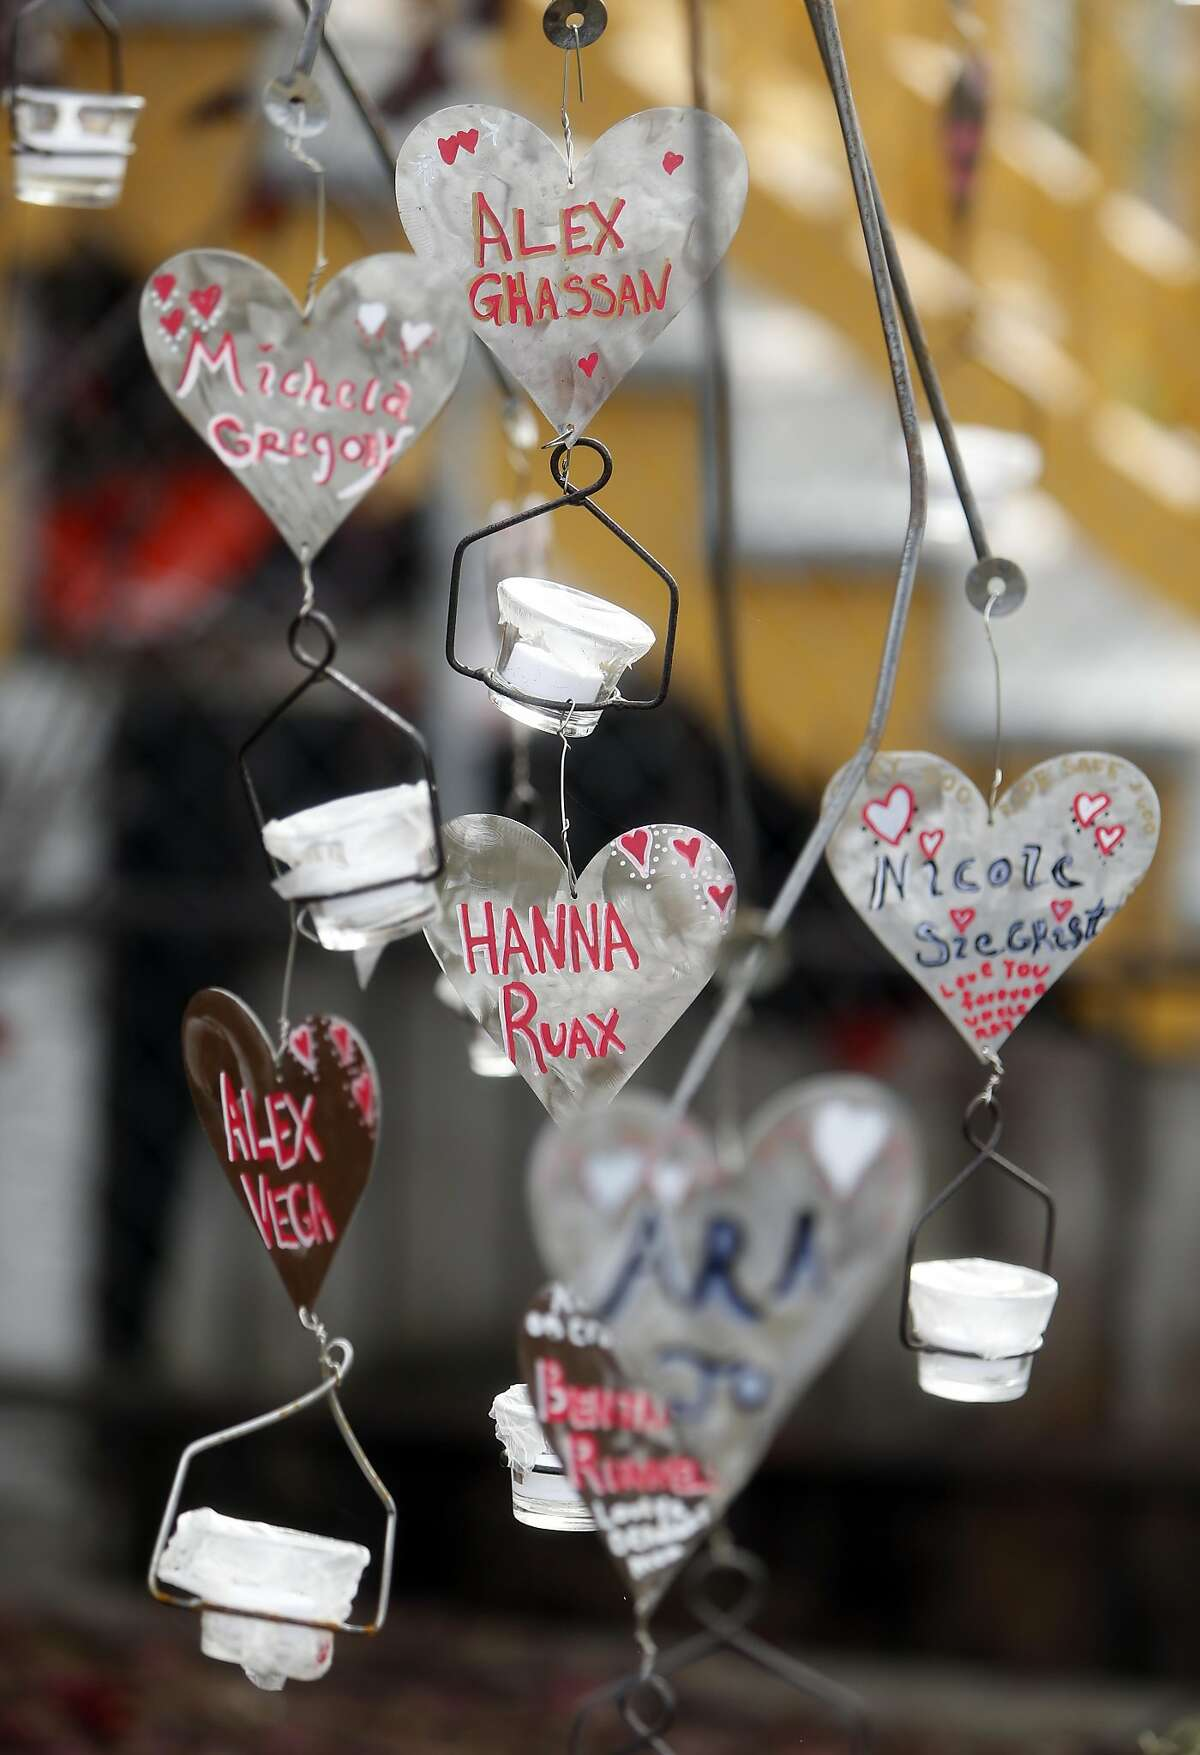 A memorial for fire victims across 31st Avenue from the Ghost Ship warehouse in Oakland, Calif., on Monday, December 12, 2016.